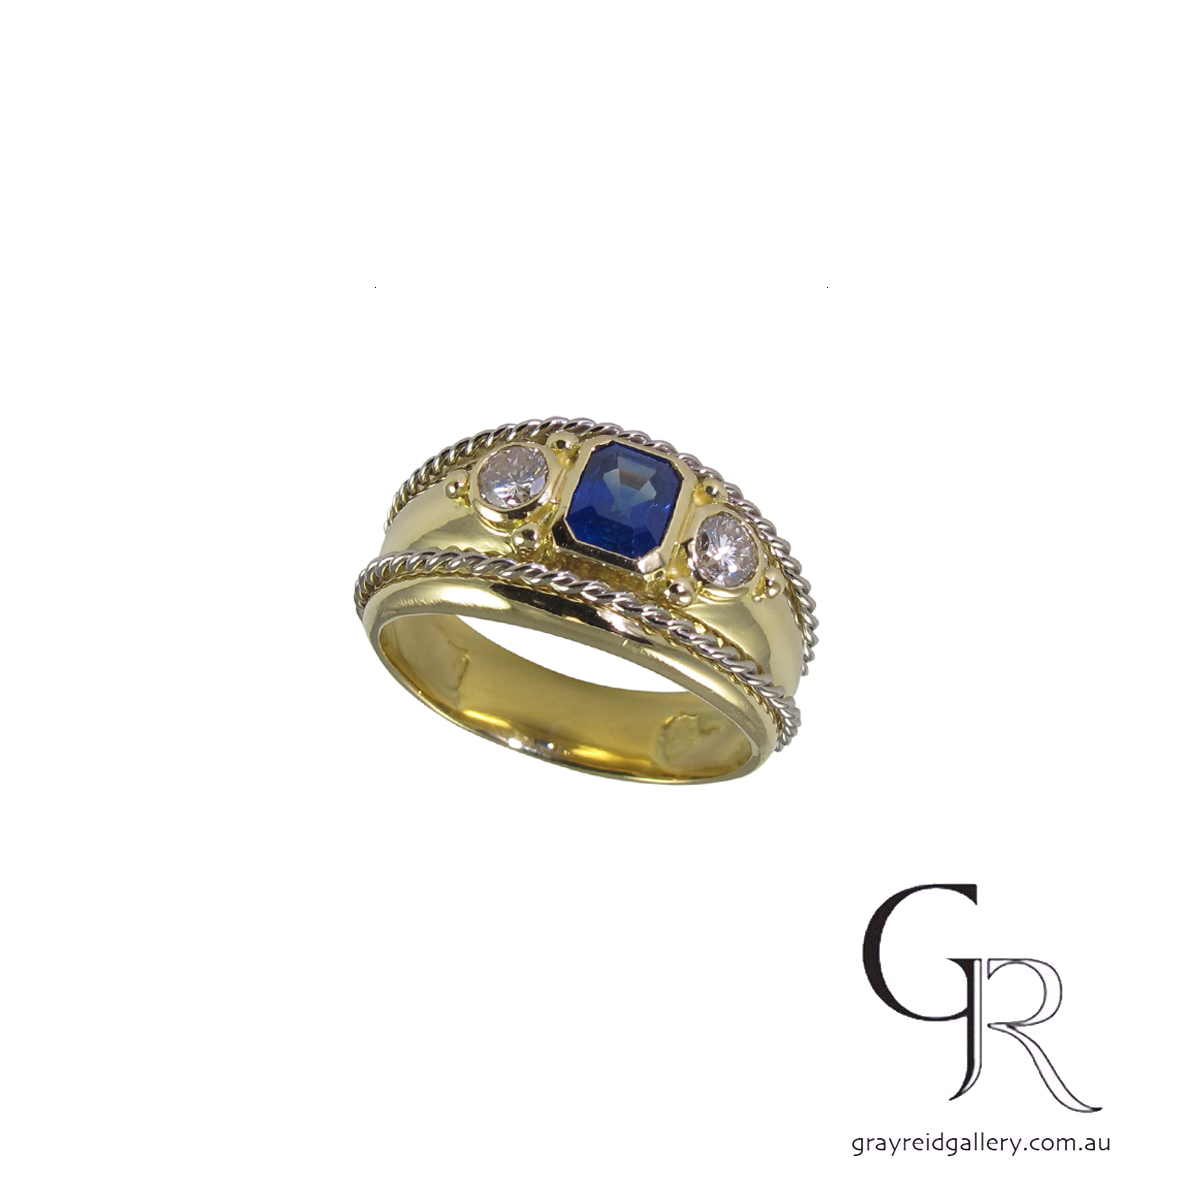 etruscan revival sapphire and diamond ring 426627 A.jpg